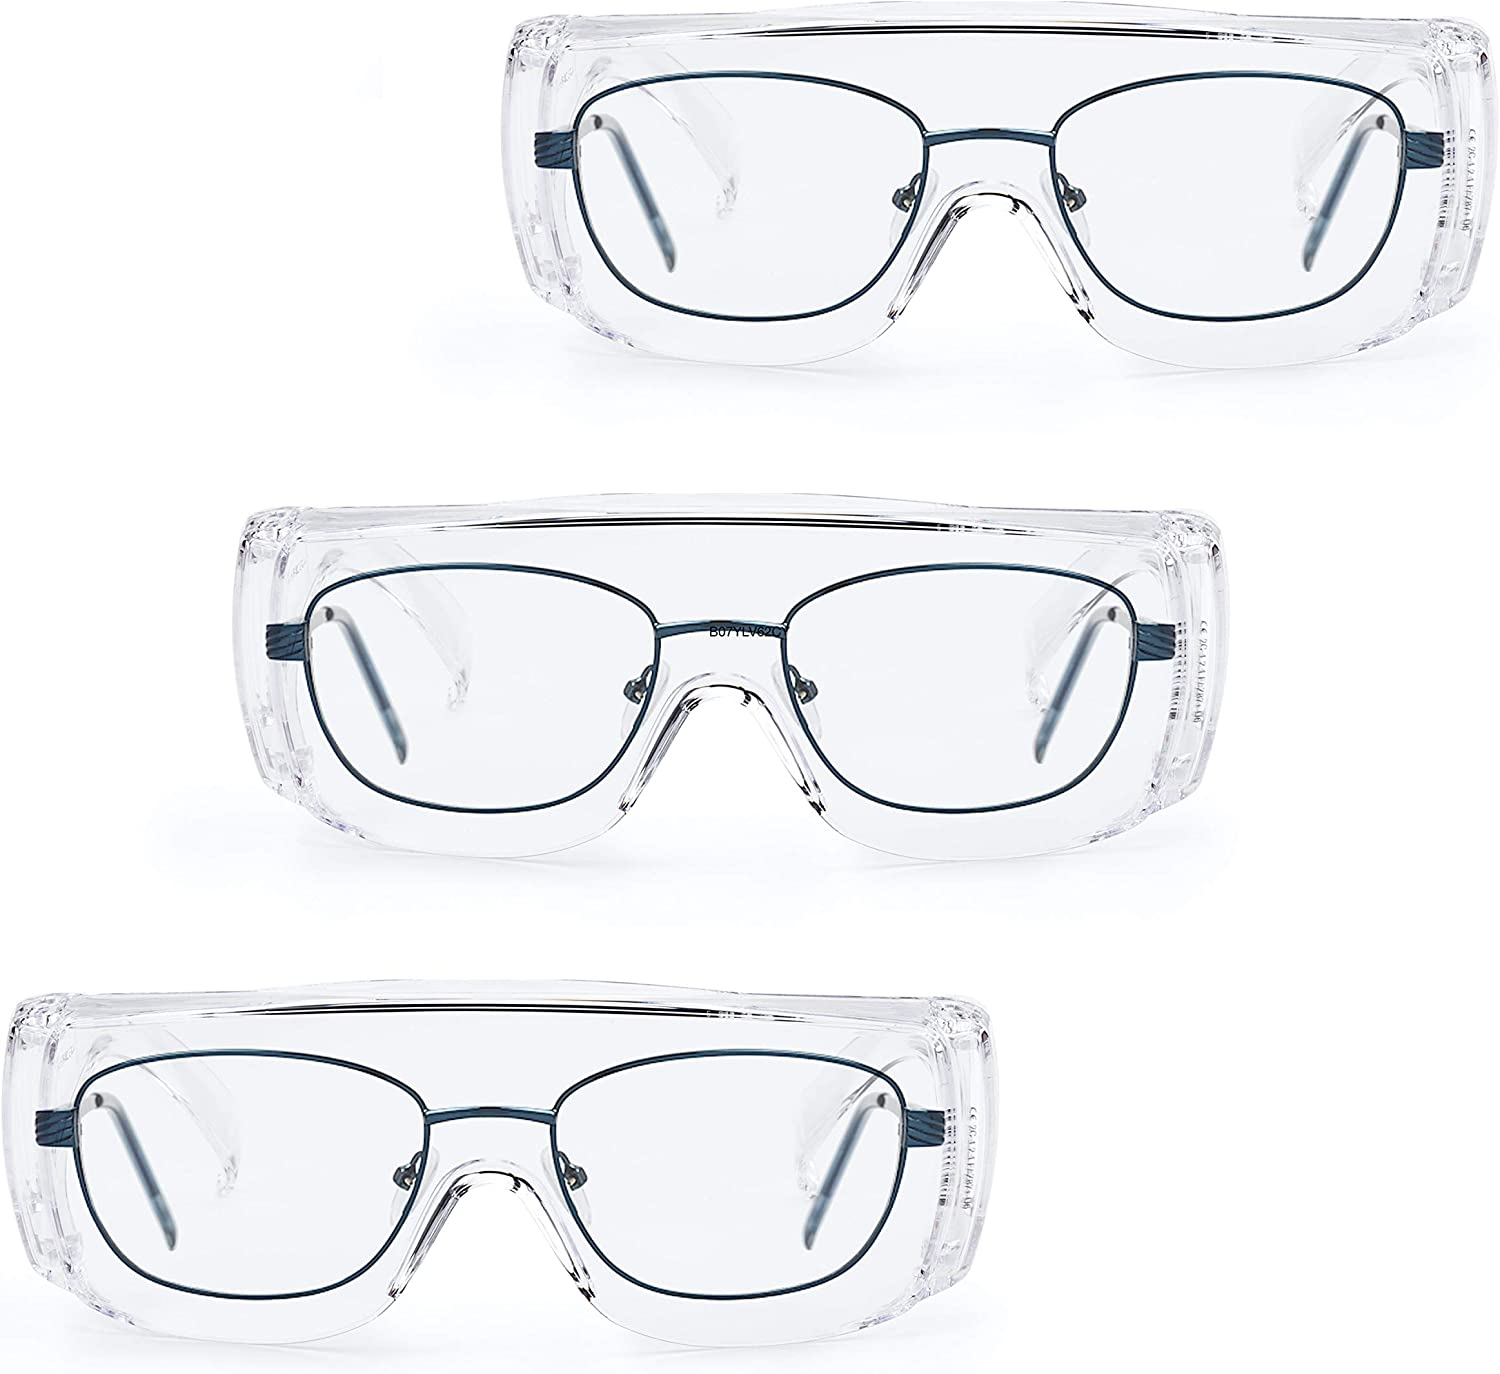 Clear Lense Safety Glasses with SolidWork Safety Goggles with universal fit